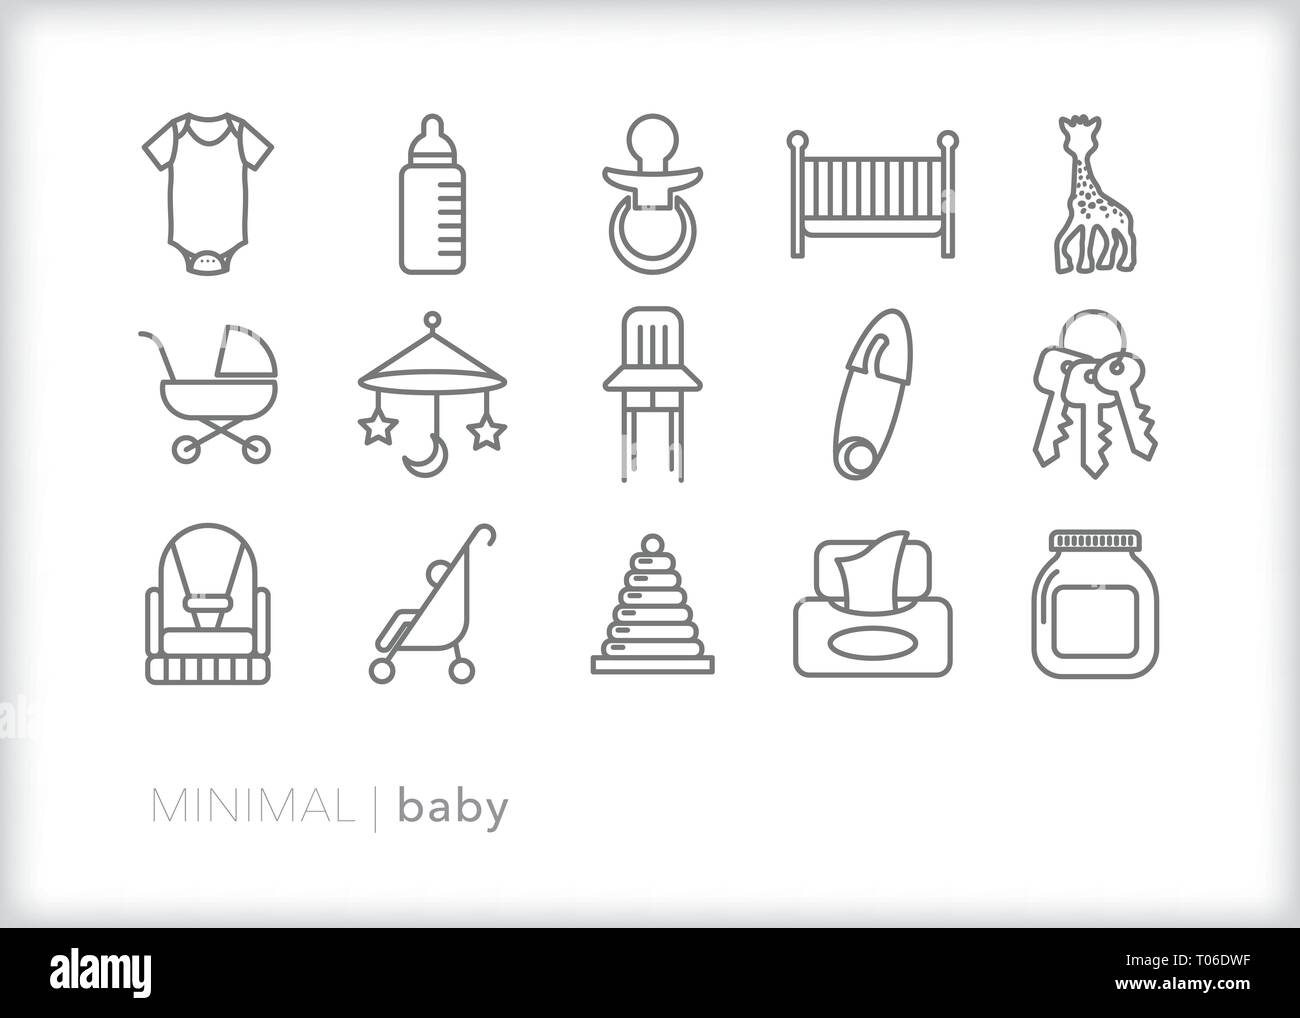 Set of 15 baby line icons of newborn, infant and child items that parents would use for feeding, cleaning, playing and safety - Stock Vector